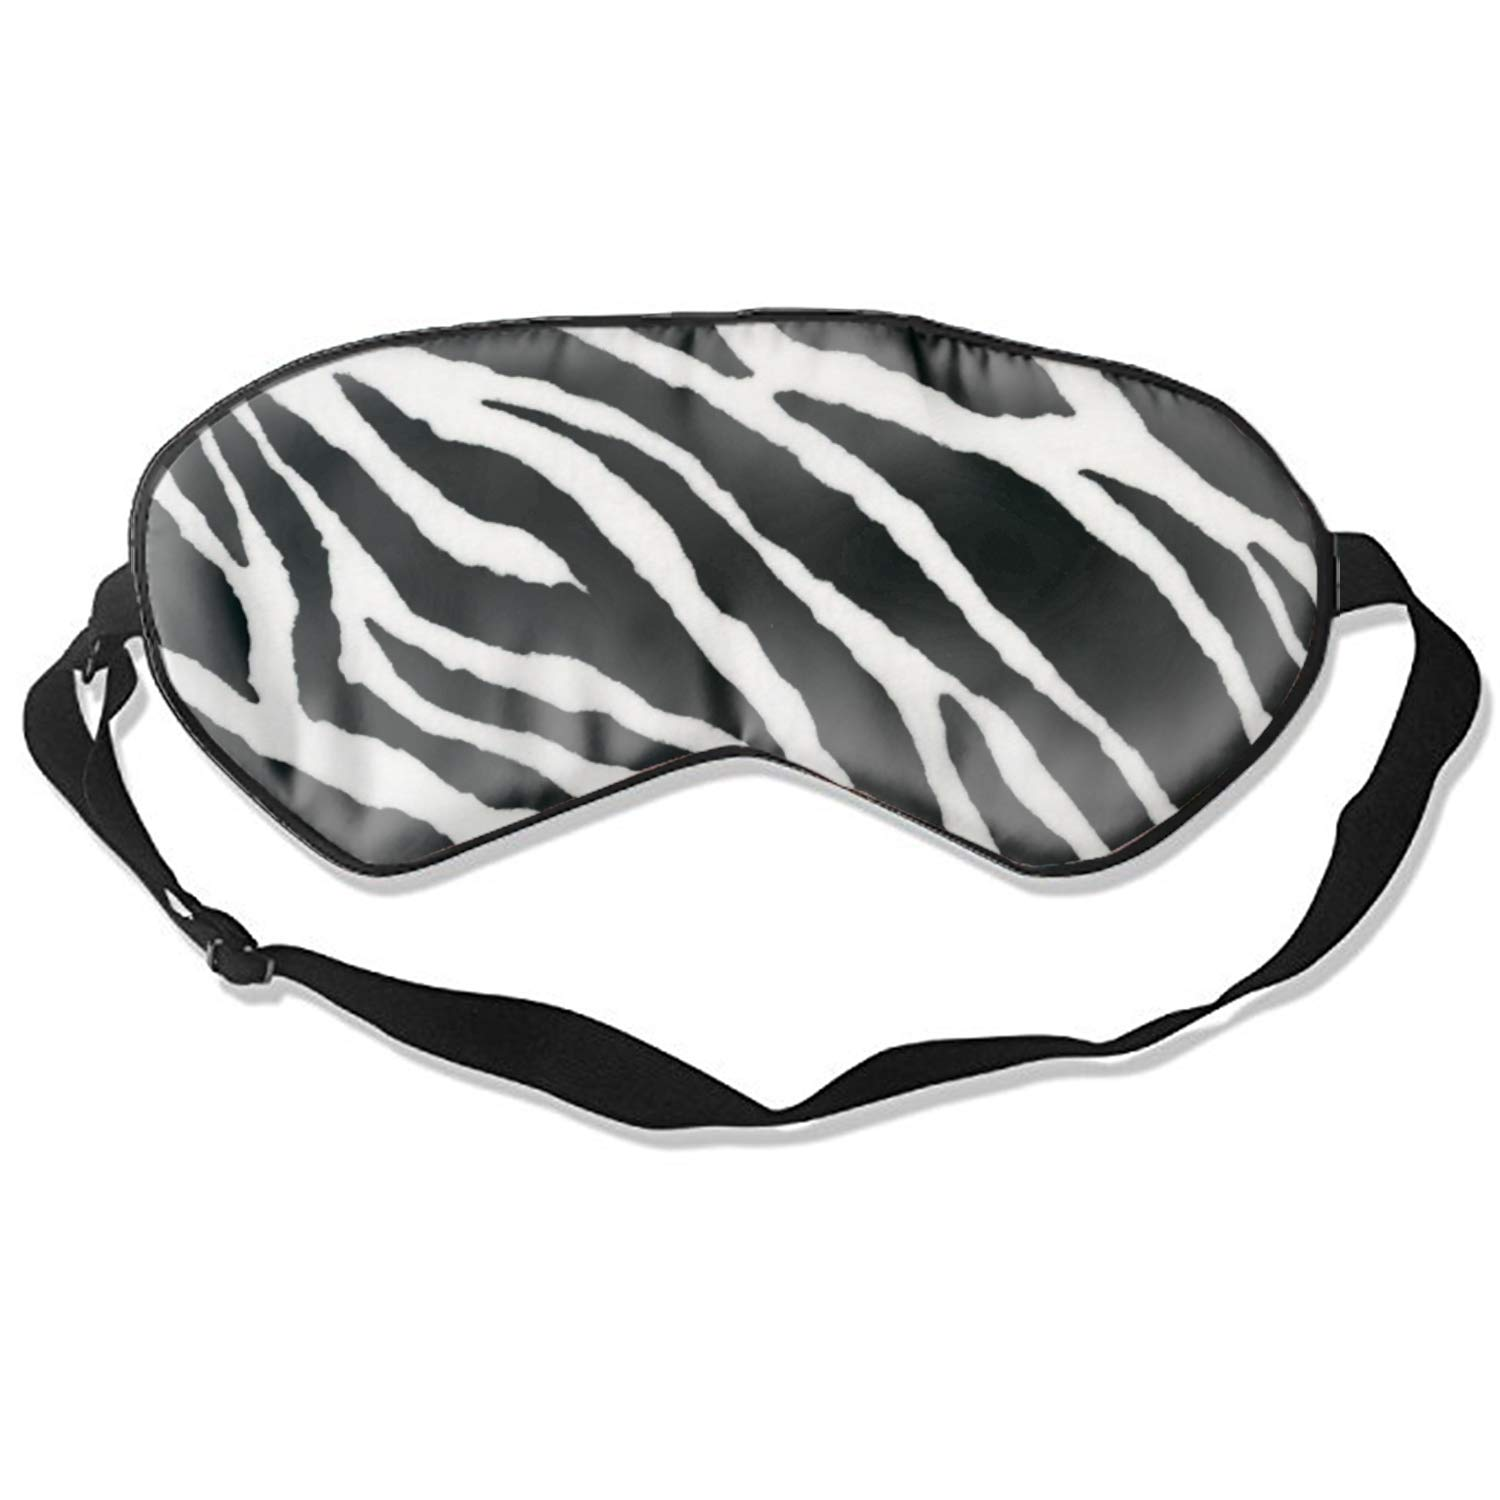 76e61fd249e Amazon.com  Free Vector Leopard Print Background Cool Eye Breathable Eye  Shade Sleeping Eye Mask Cover for Men Women Kids White  Health   Personal  Care